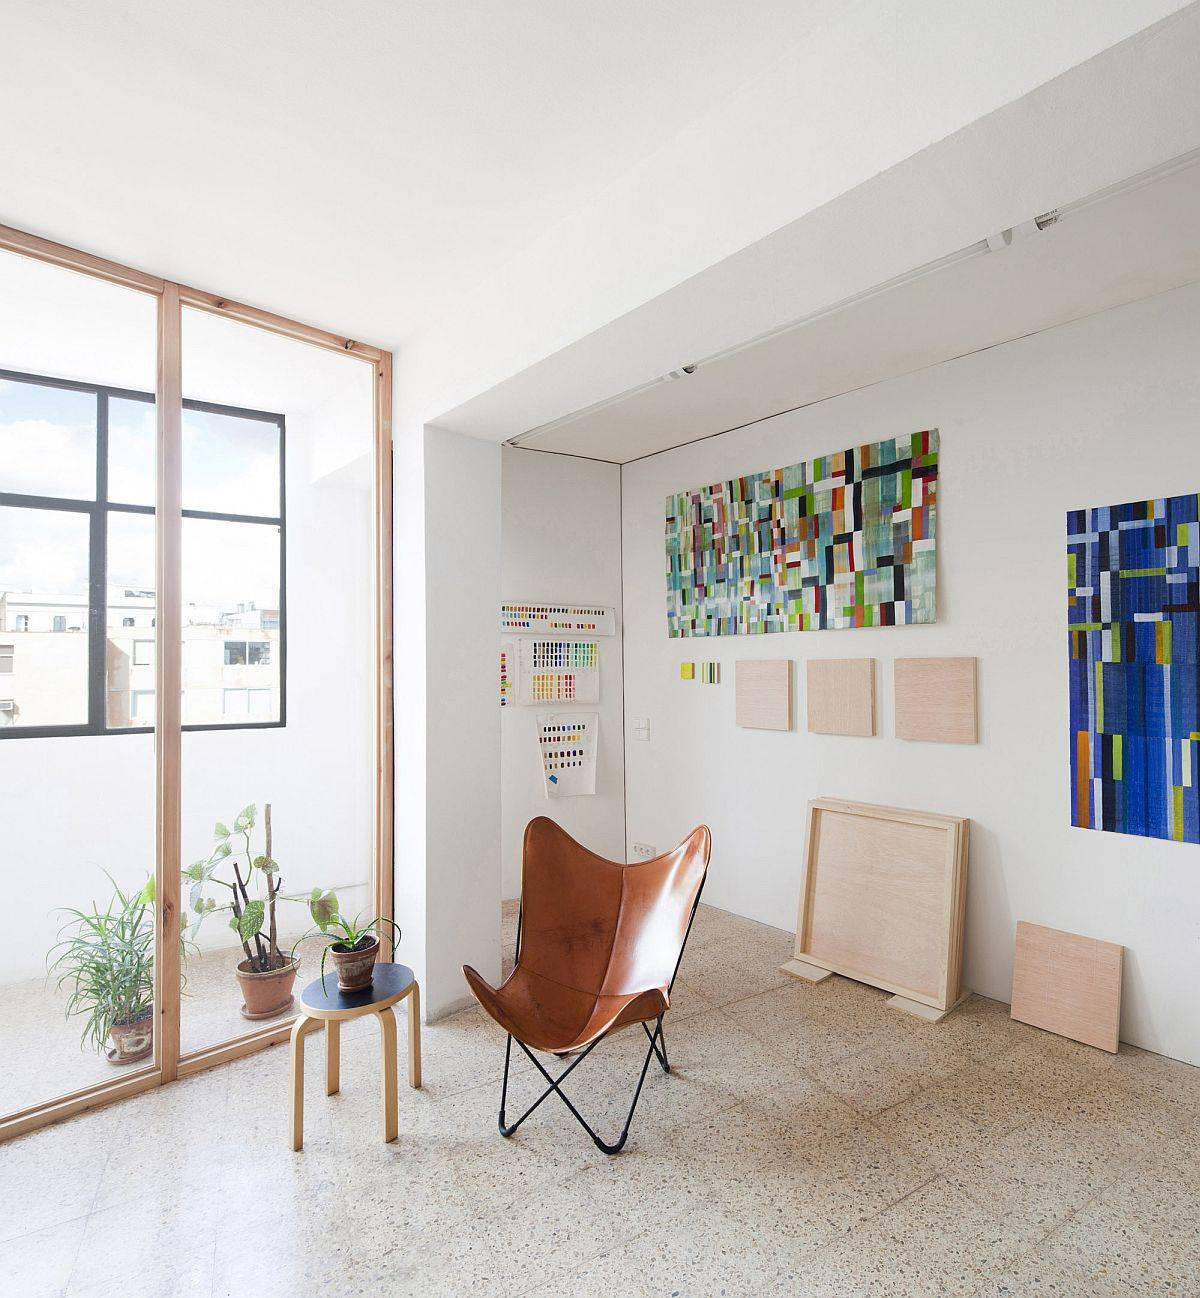 Improved-office-interior-with-fabulous-wall-art-pieces-and-the-iconic-Butterfly-chair-in-leather-88884